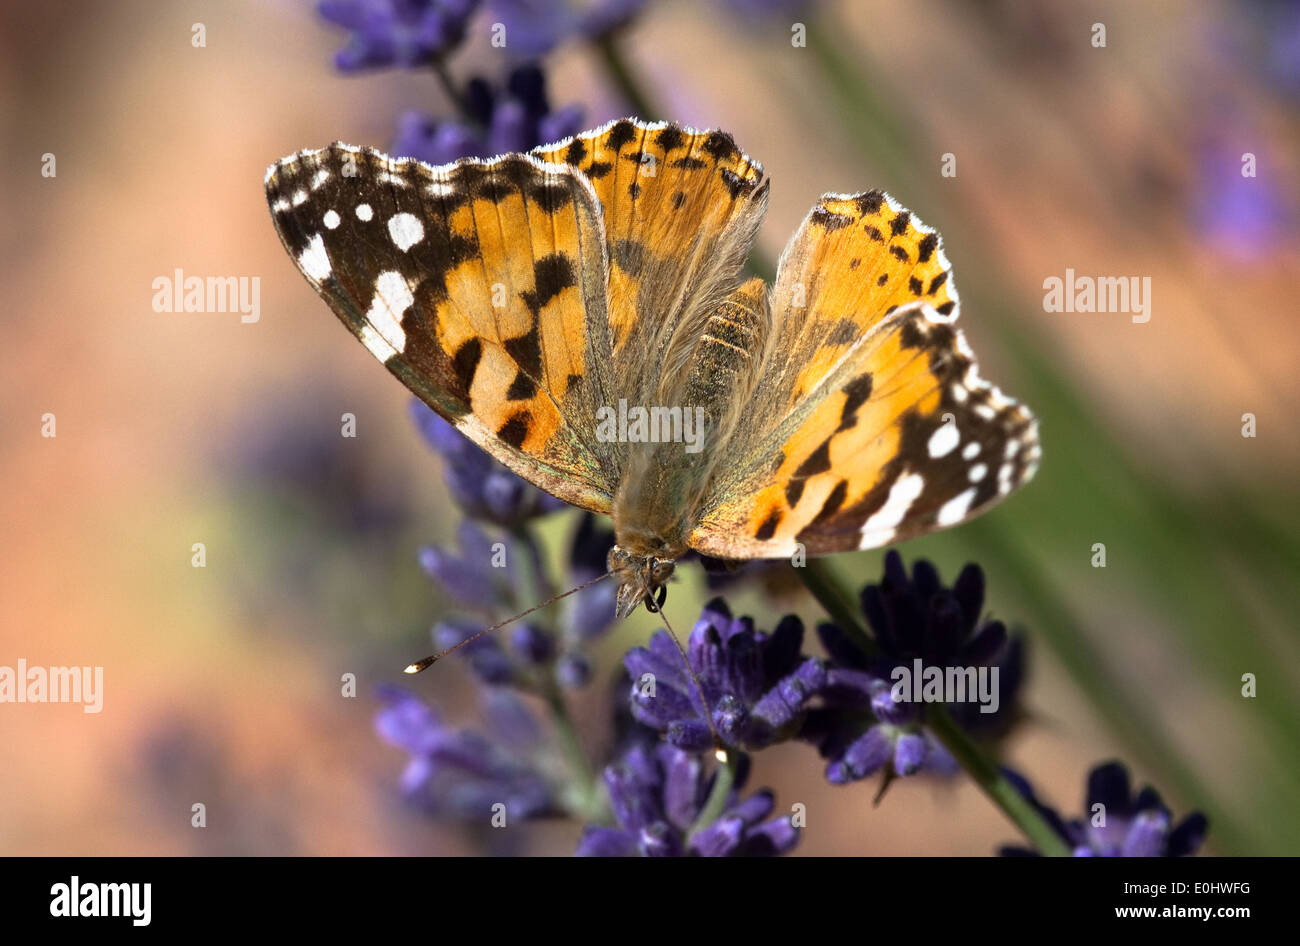 Distelfalter - Painted Lady Stock Photo